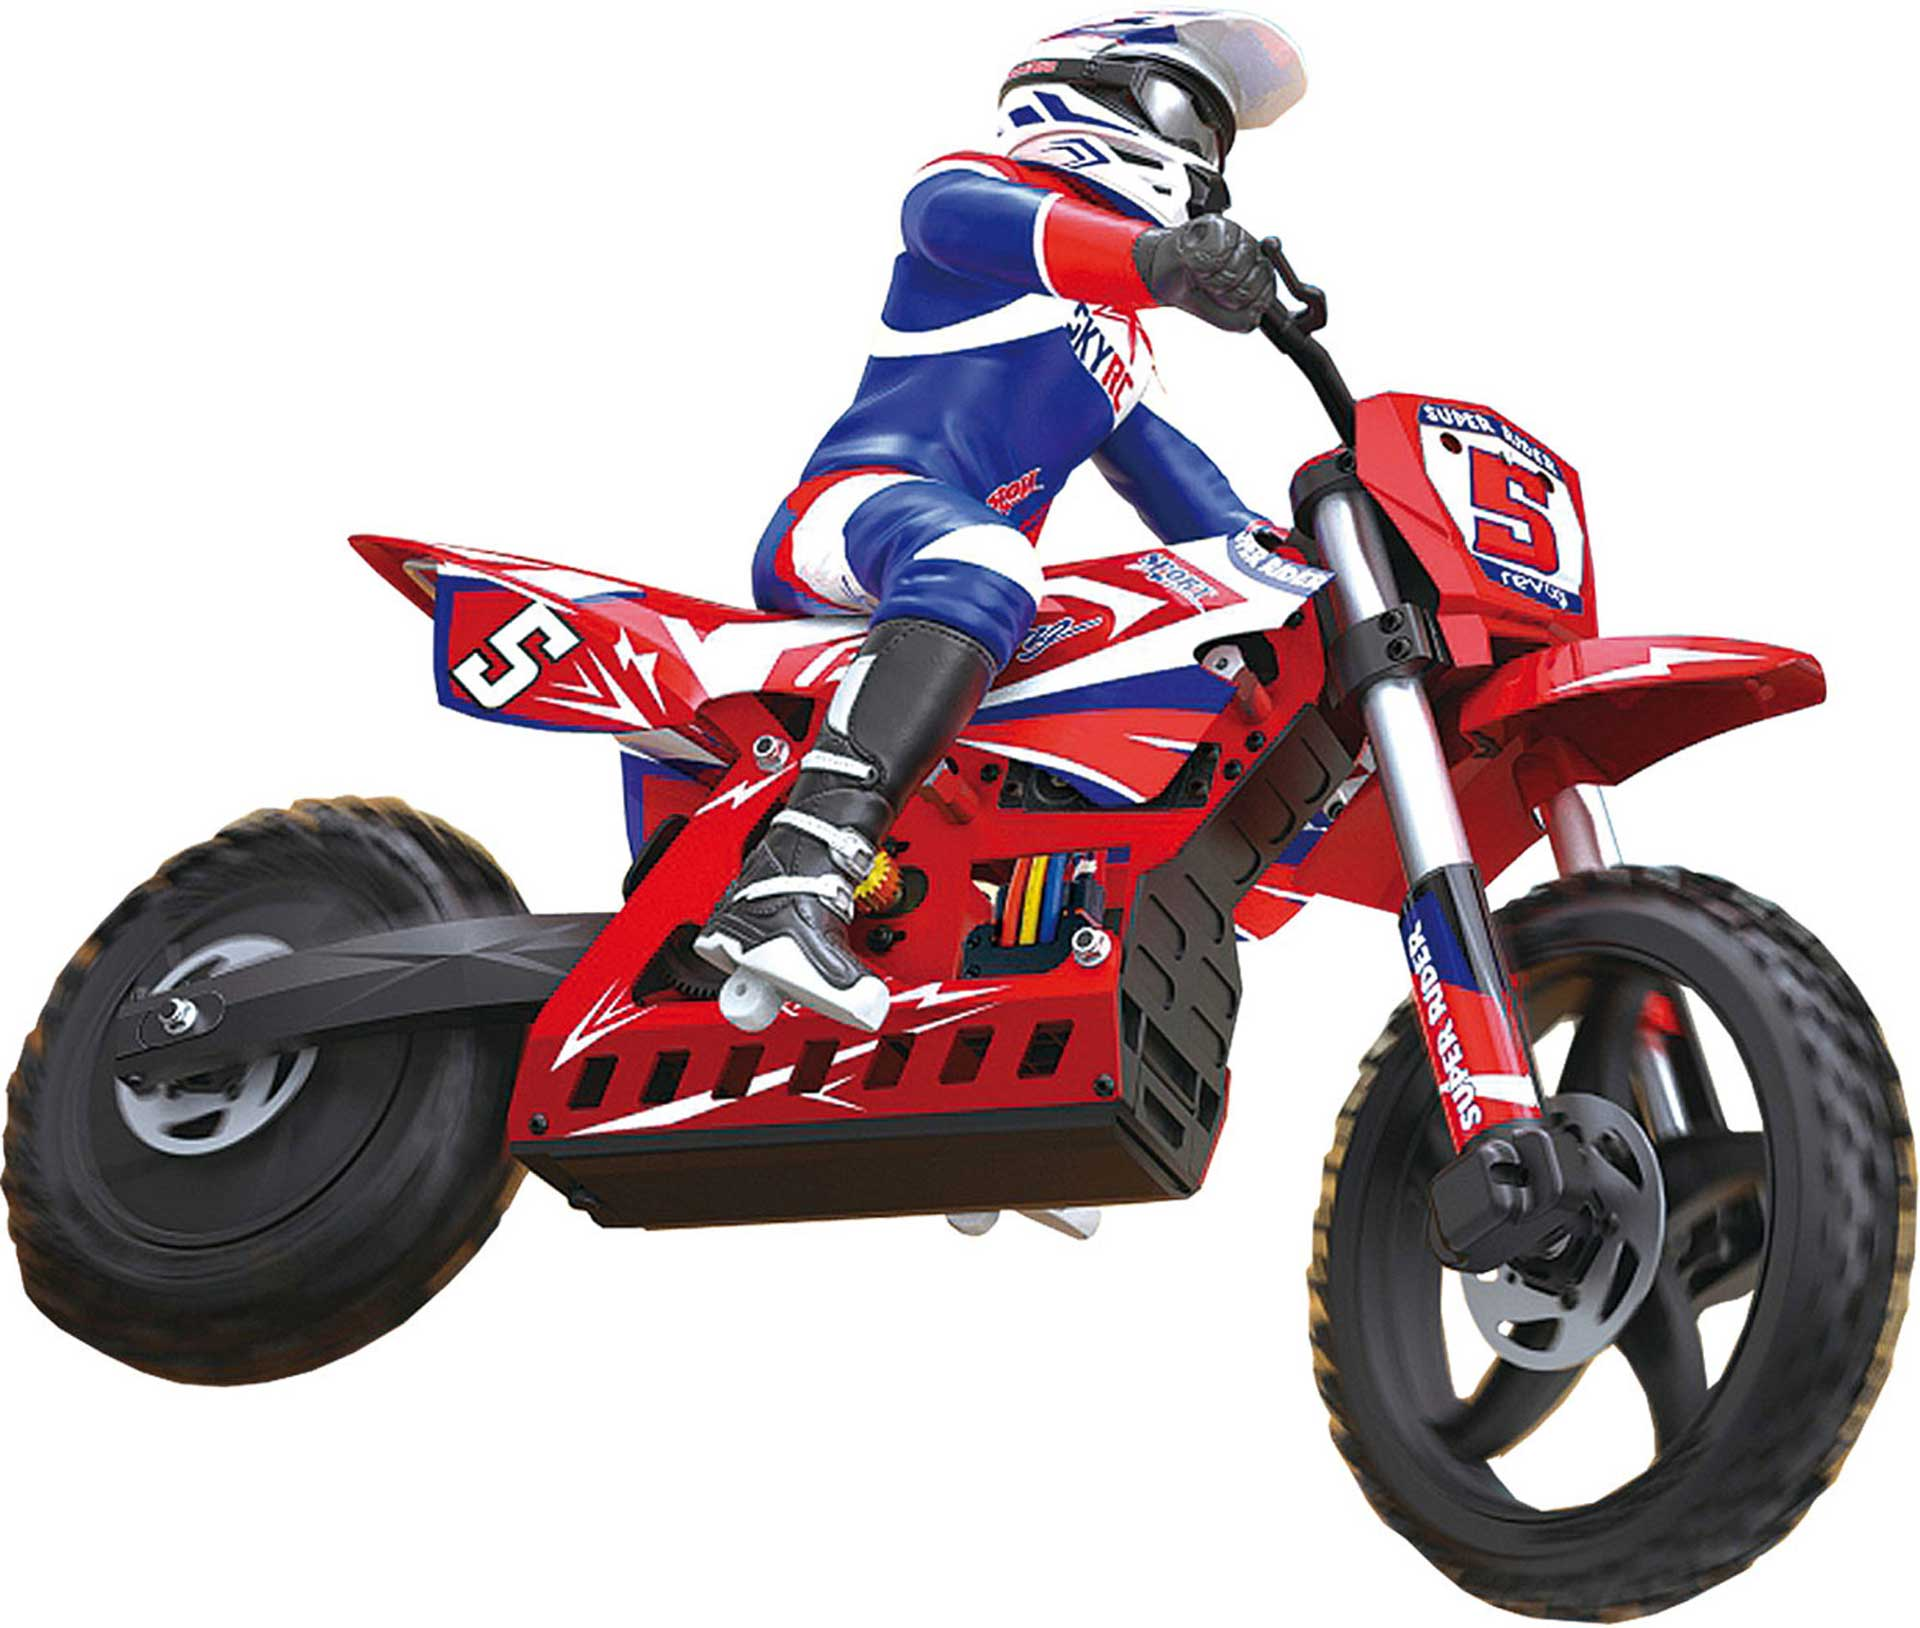 SKYRC SUPER RIDER SR5 1/4 SCALE RC DIRT BIKE INCL. GYRO STABILIZER